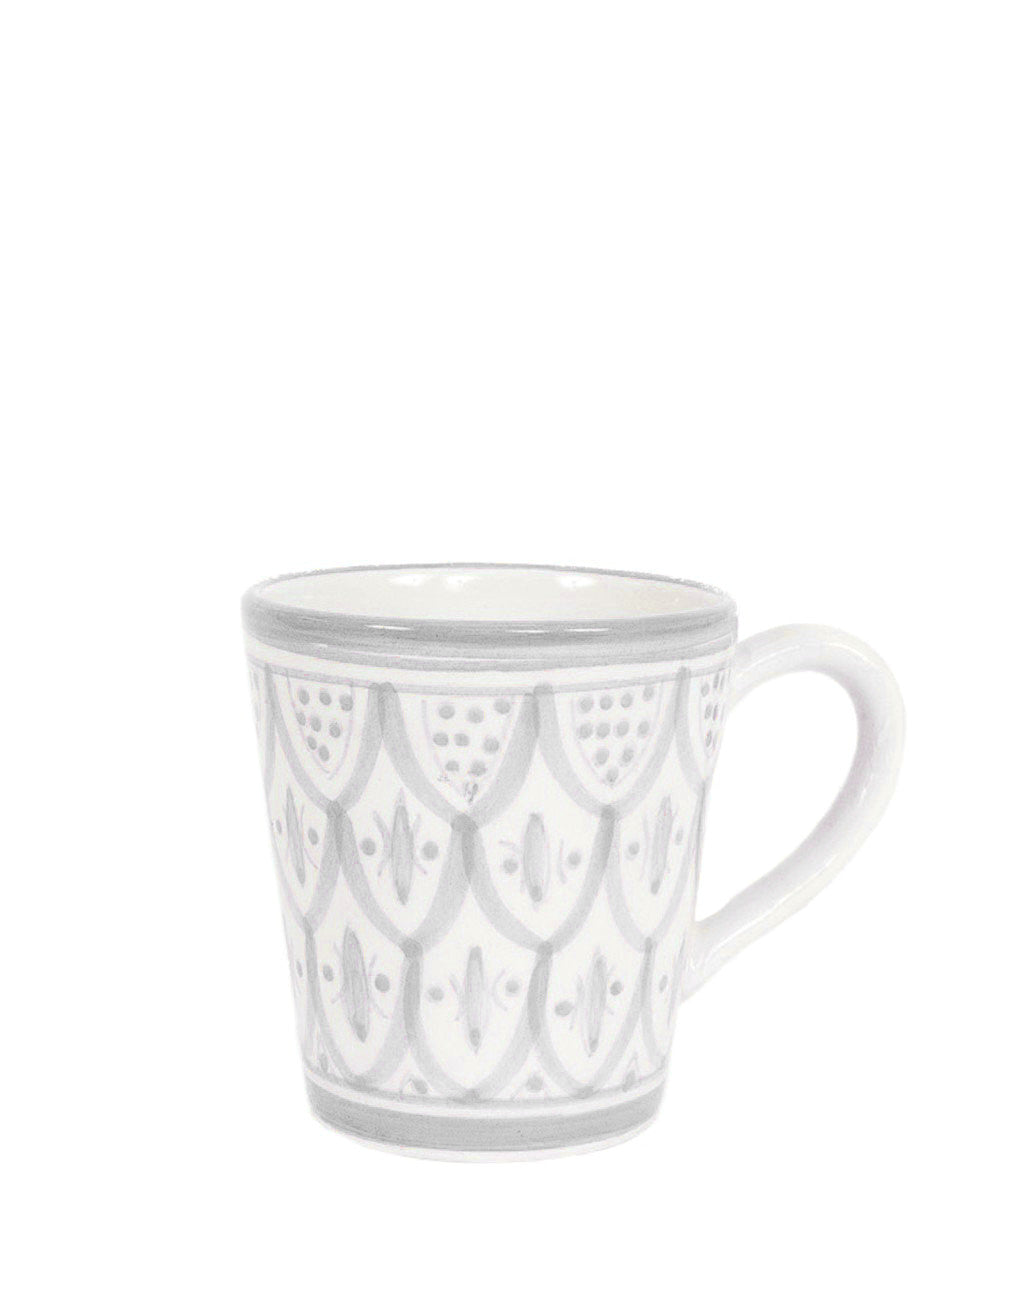 Ceramic Mug - Gray | The Little Market